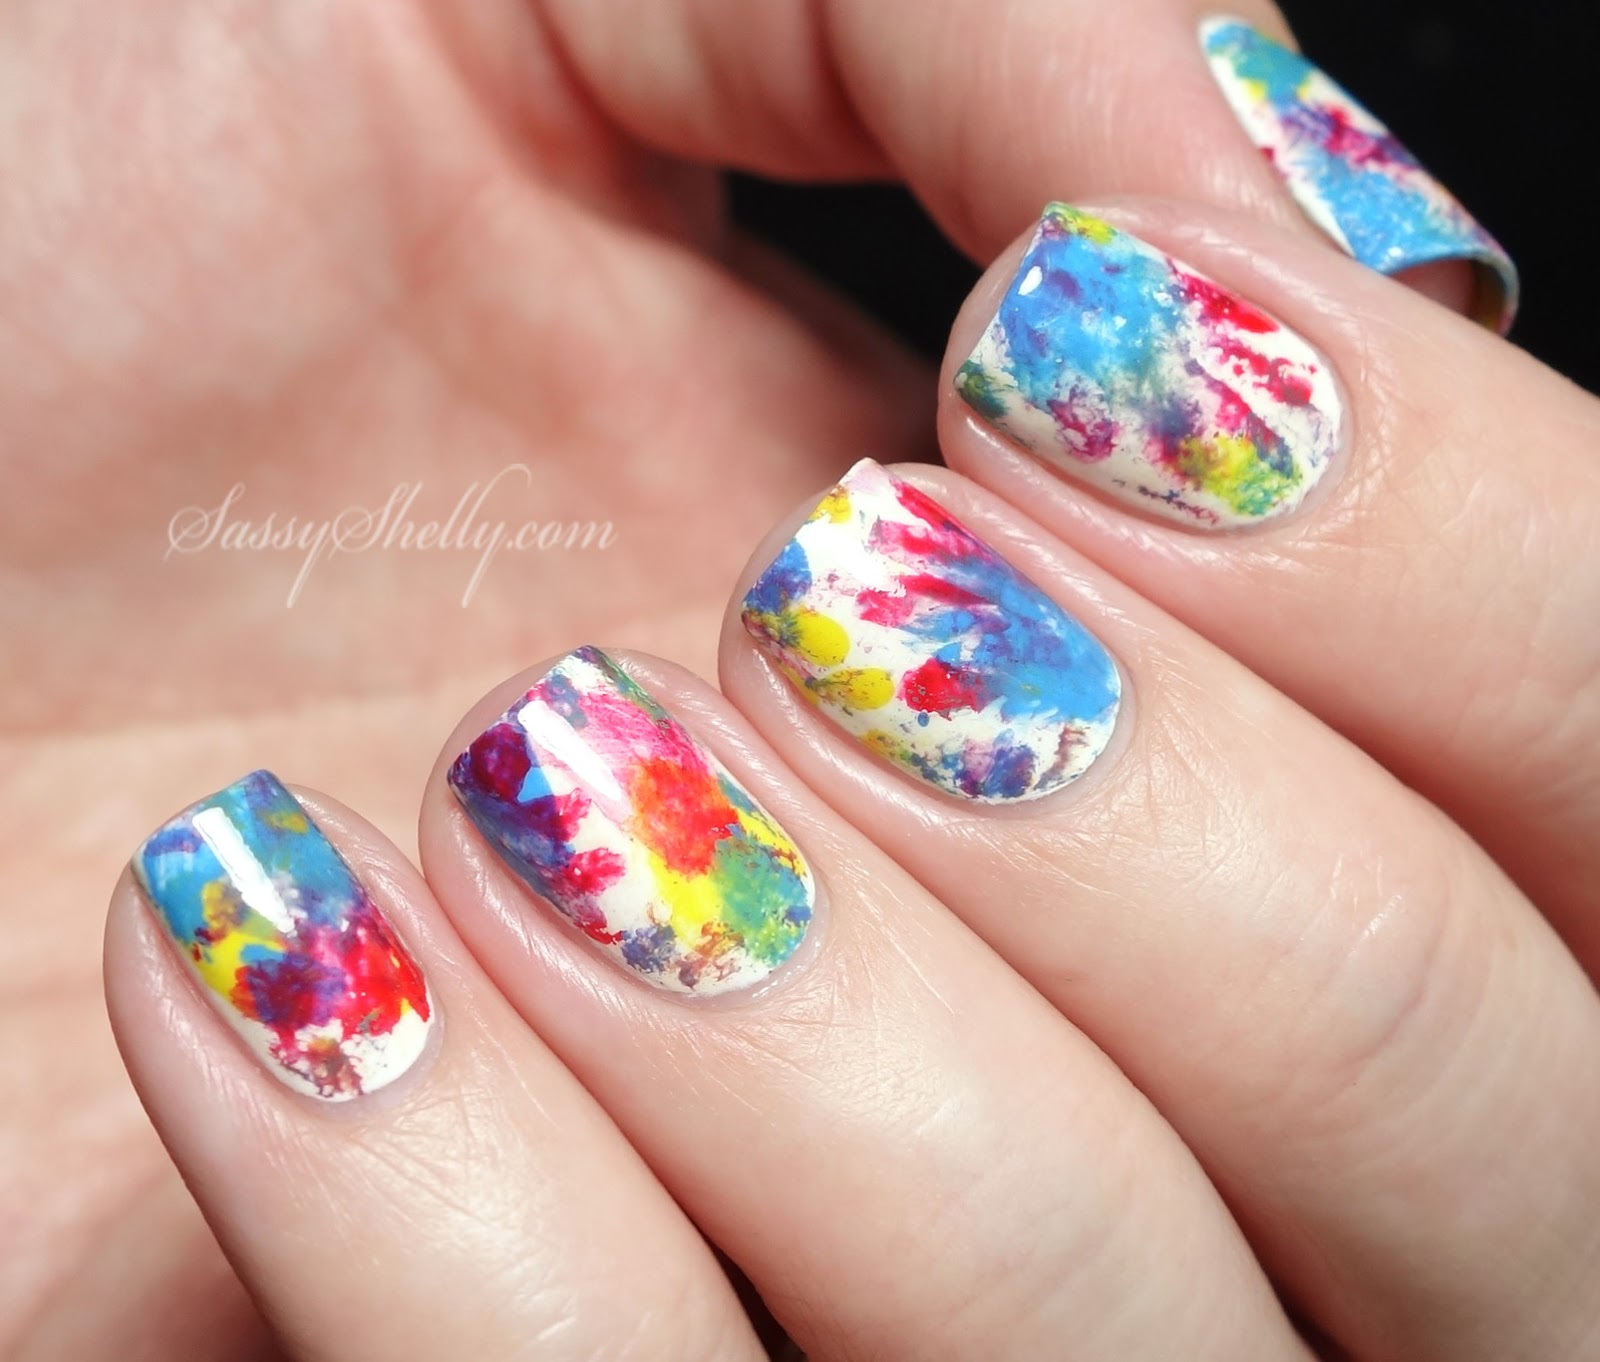 d6503dcf1345c0 Colorful abstract sponge manicure inspired by kids finger paintings    Sassy  Shelly